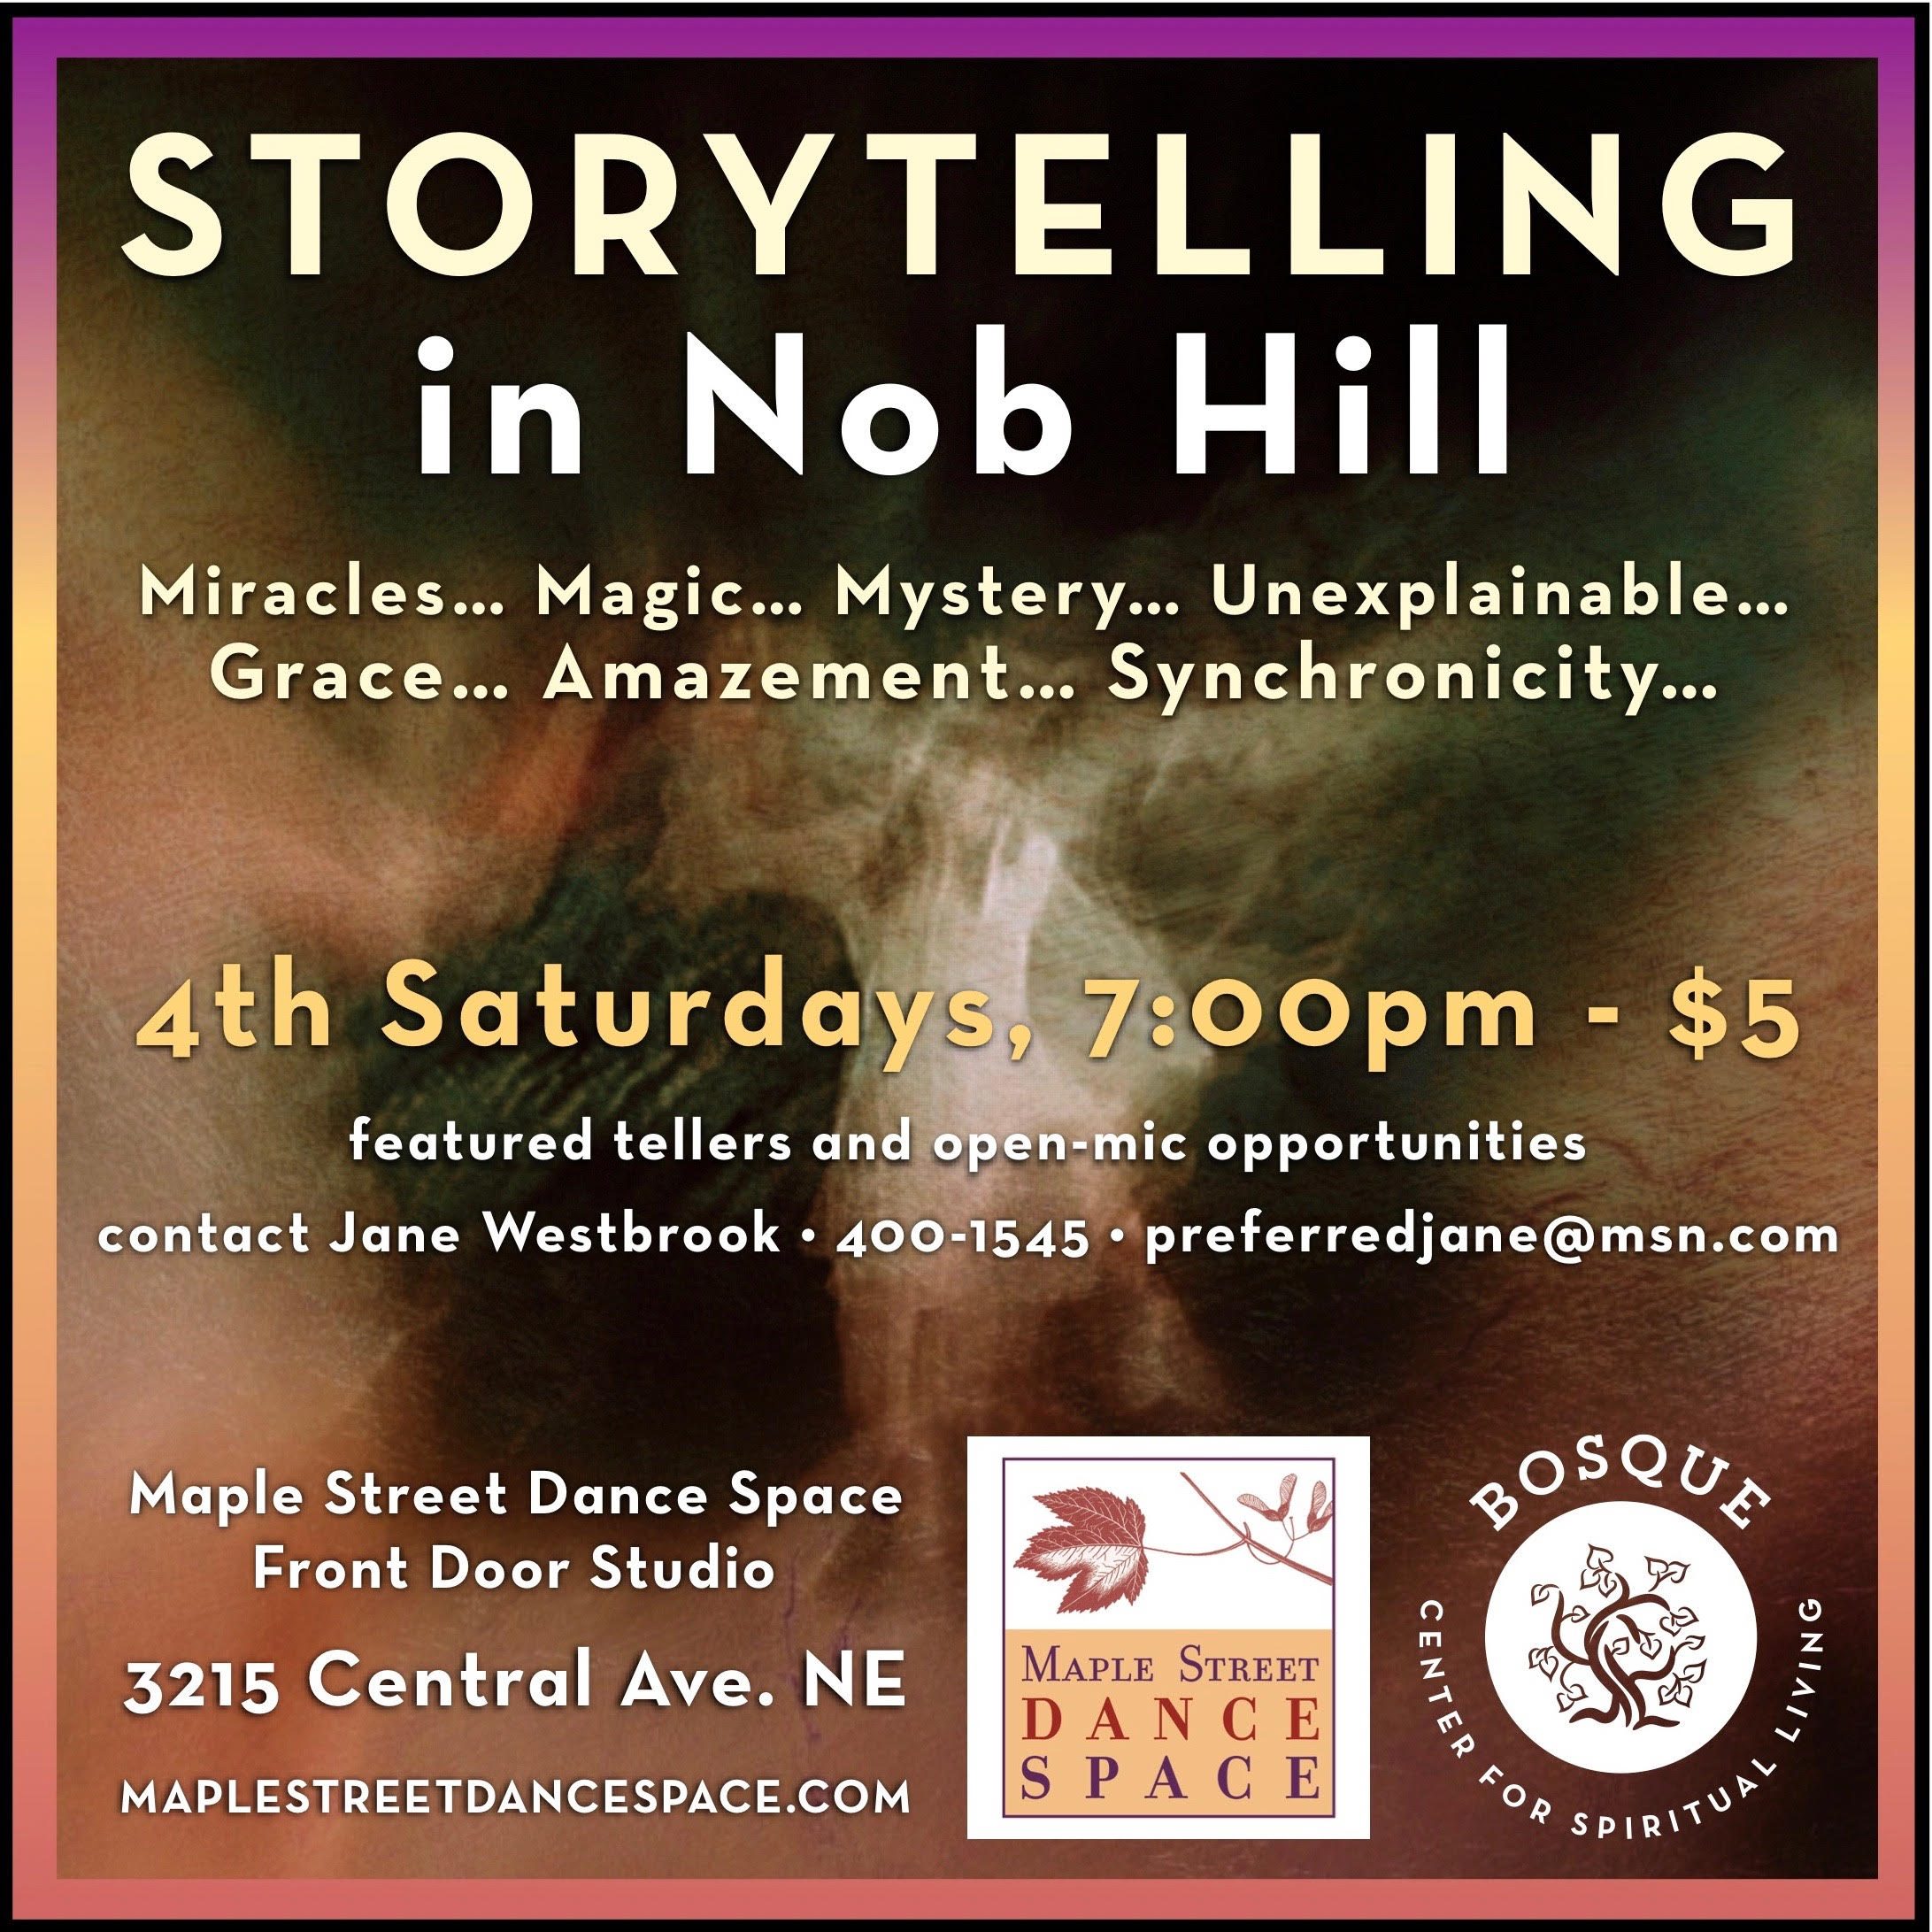 Storytelling 4th Saturdays - PROMO.jpeg